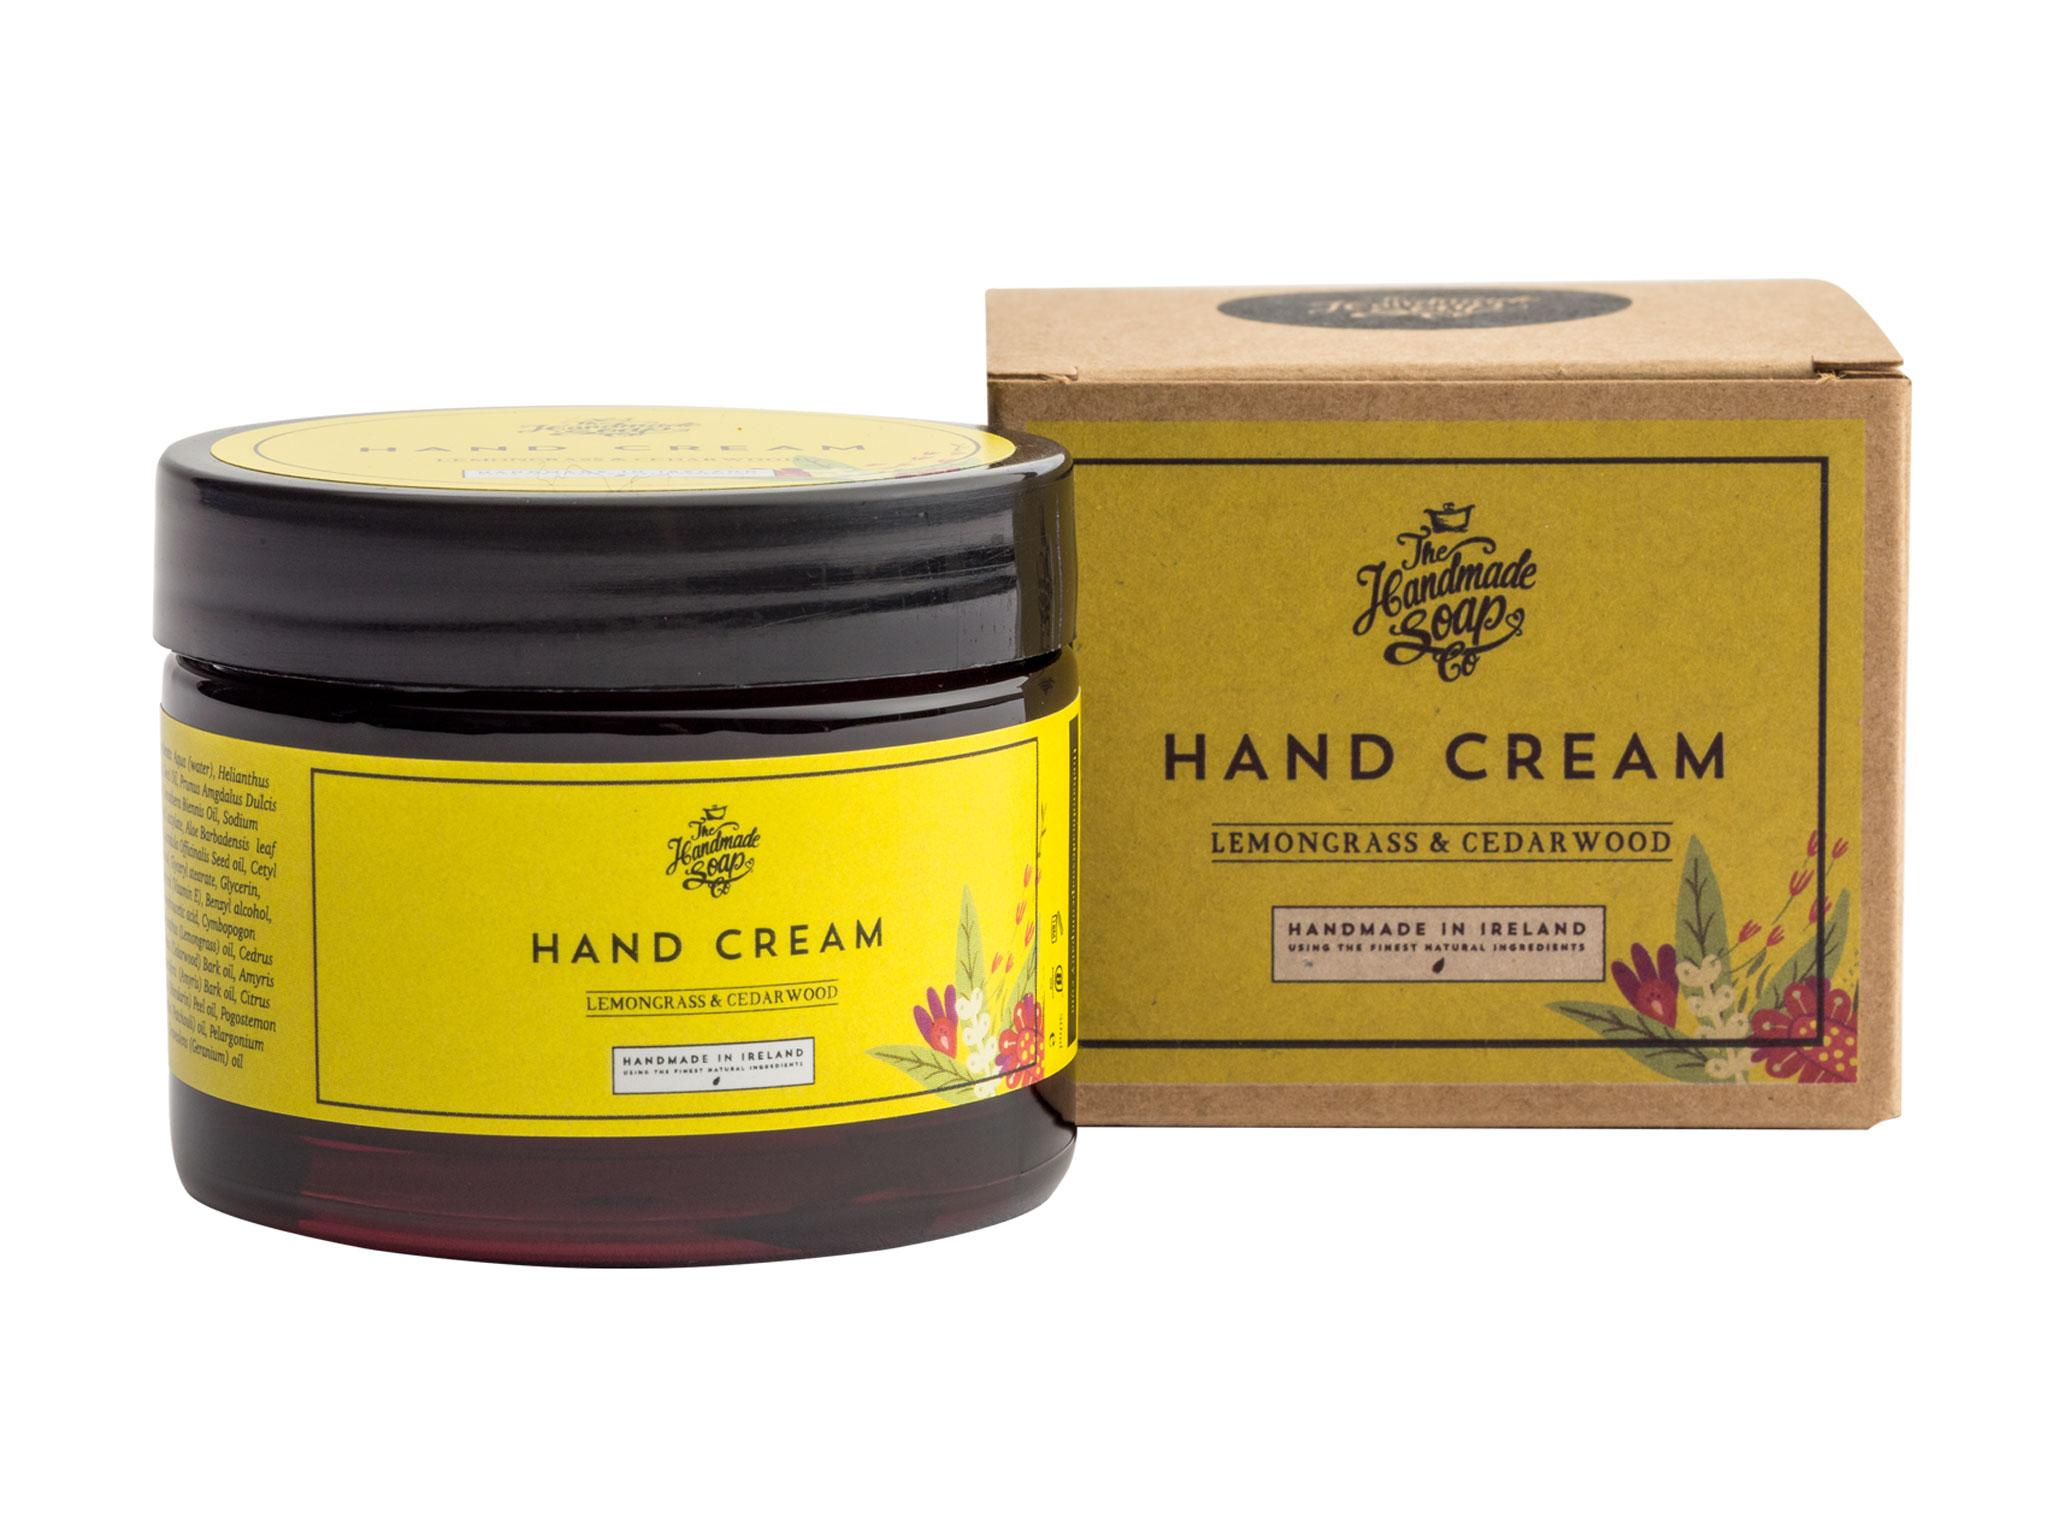 12 Best Vegan And Cruelty Free Skincare Products The Independent Ponds Age Miracle Day Cream Jar 50 G Handmade Soap Company Lemongrass Cedarwood Hand 50g 1195 Lovelula